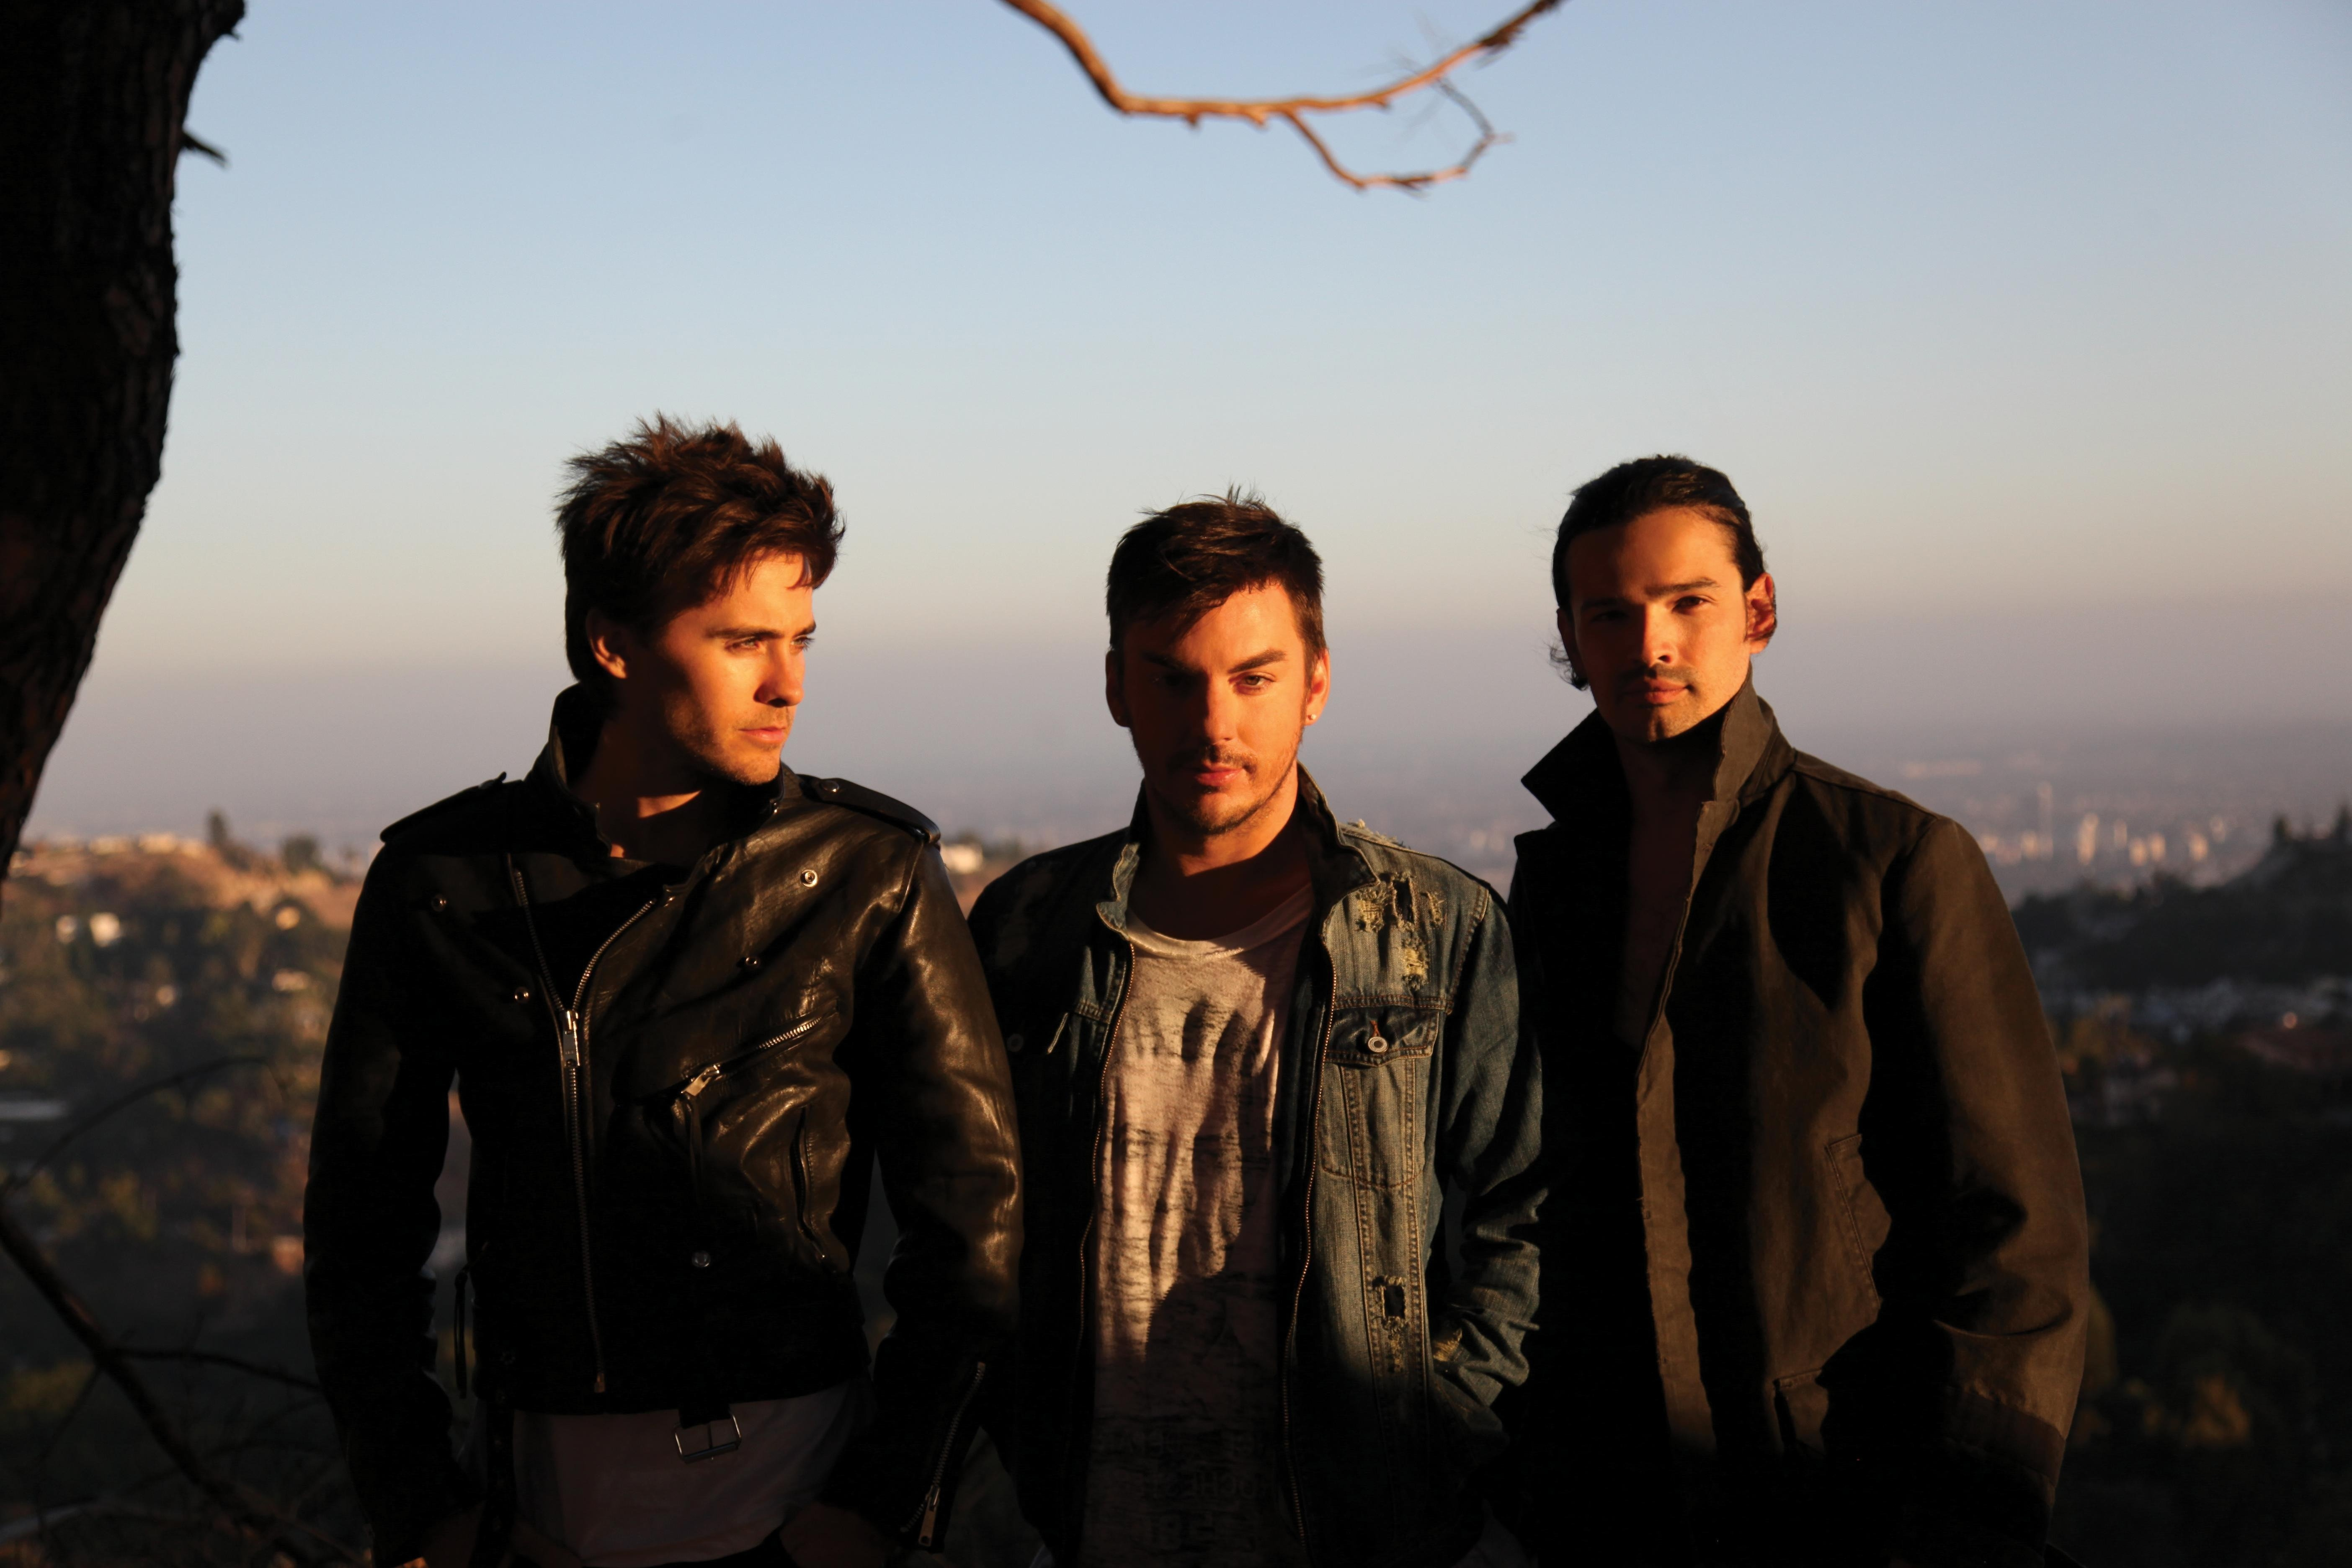 30 seconds to mars band wallpaper pictures 51528